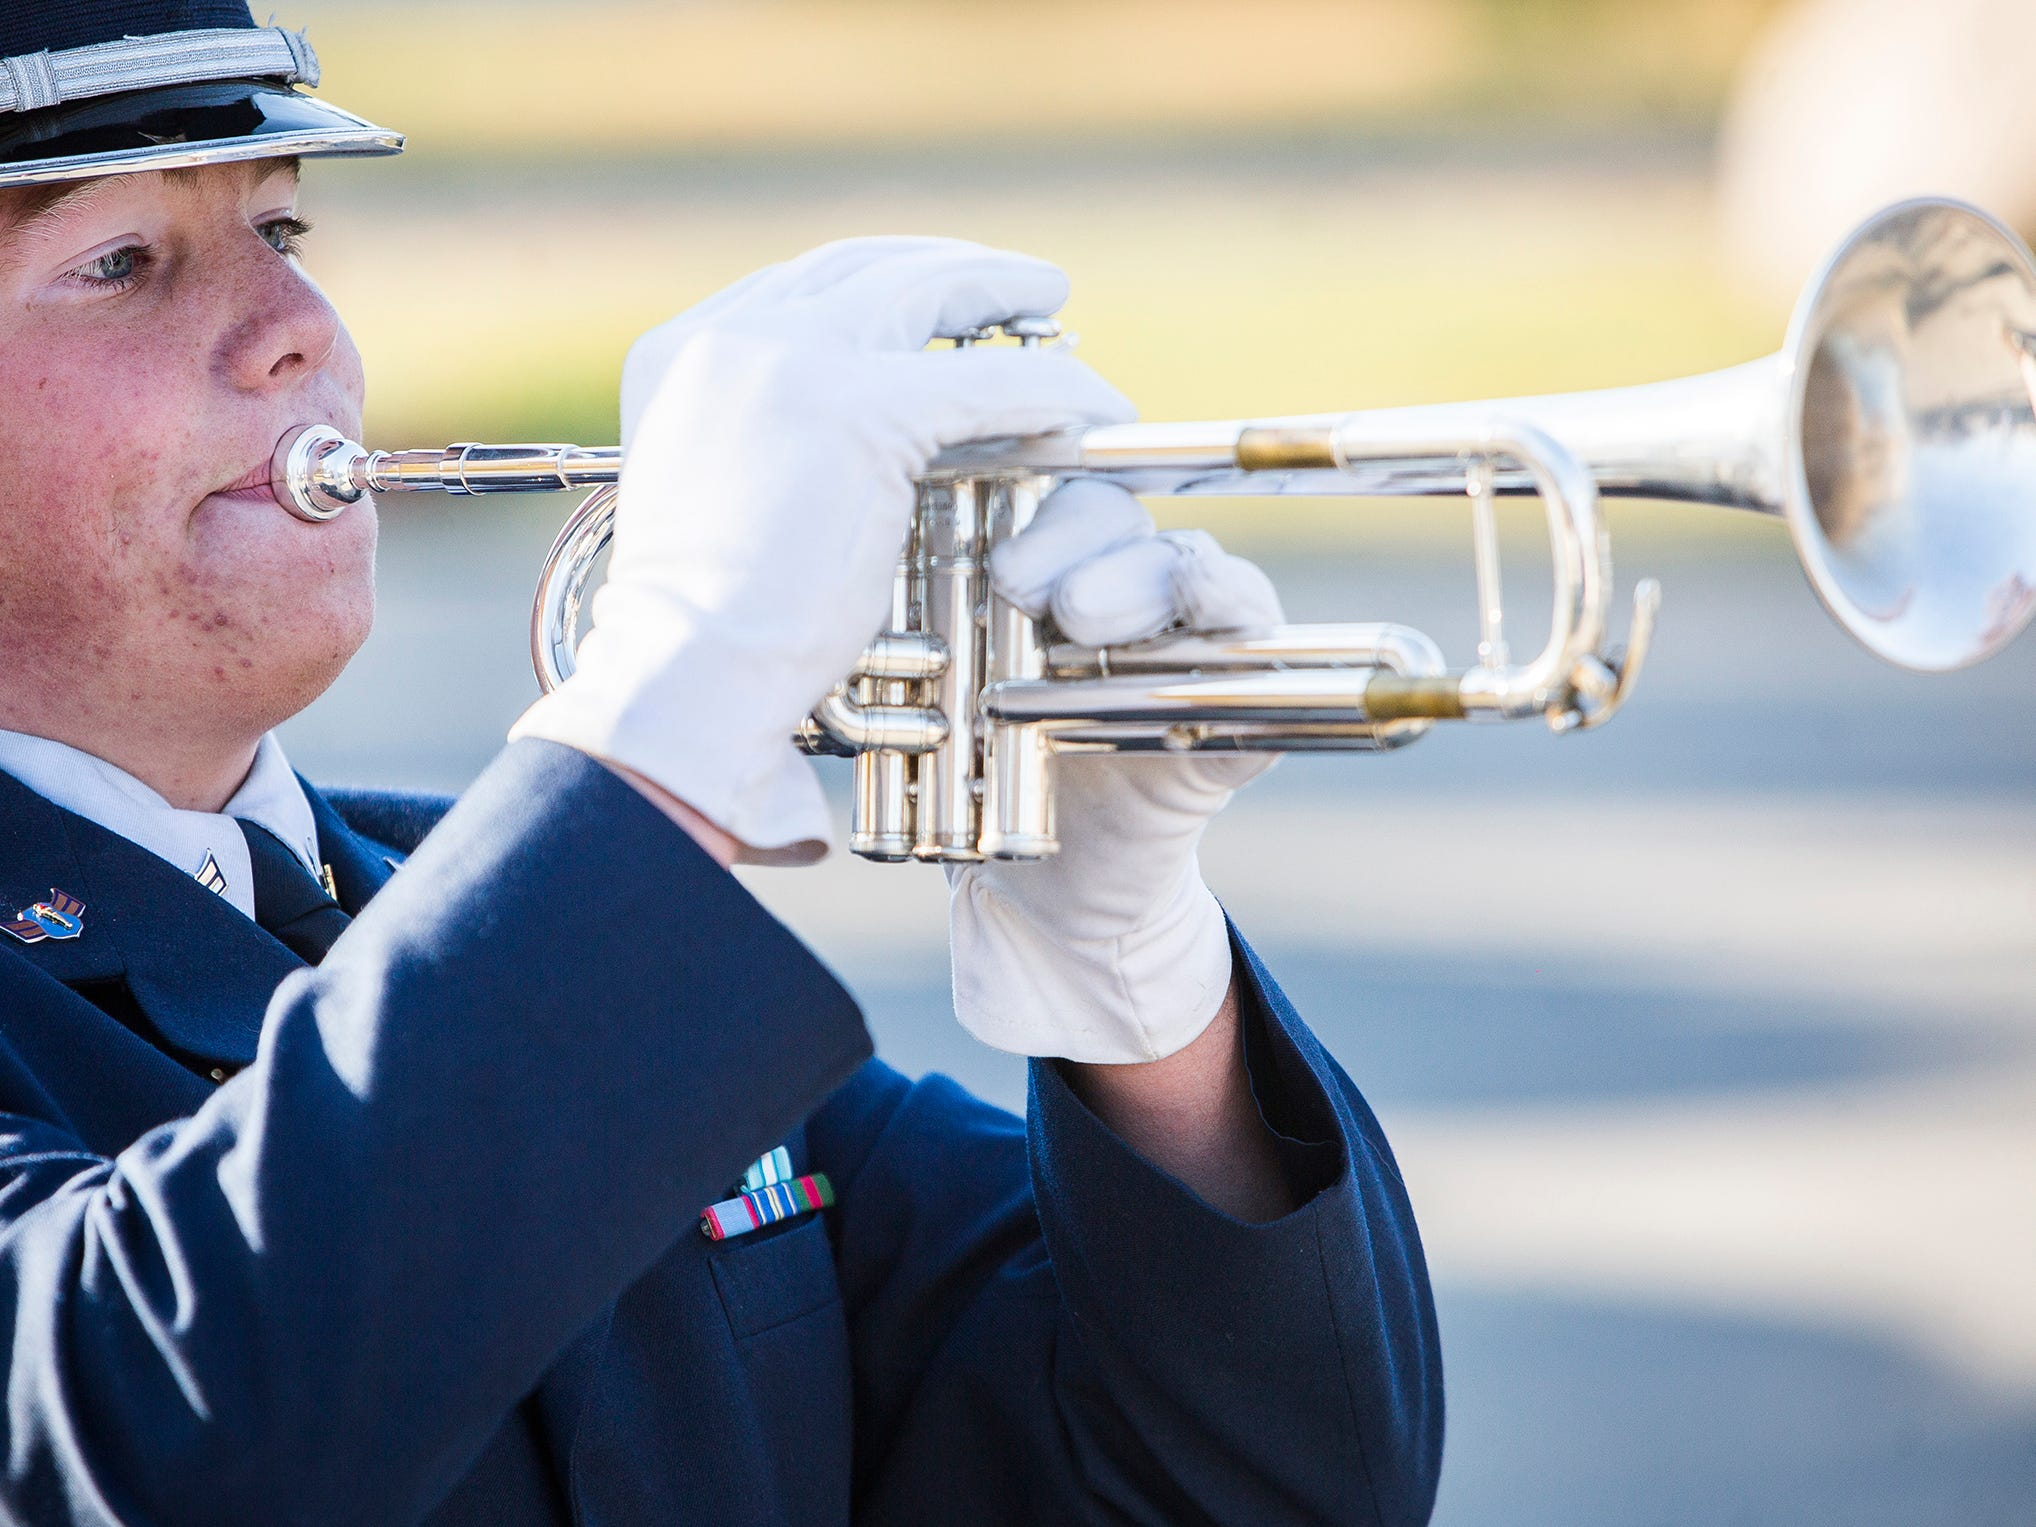 Taps is performed at Heekin Park during the Delaware County Veterans Day program.